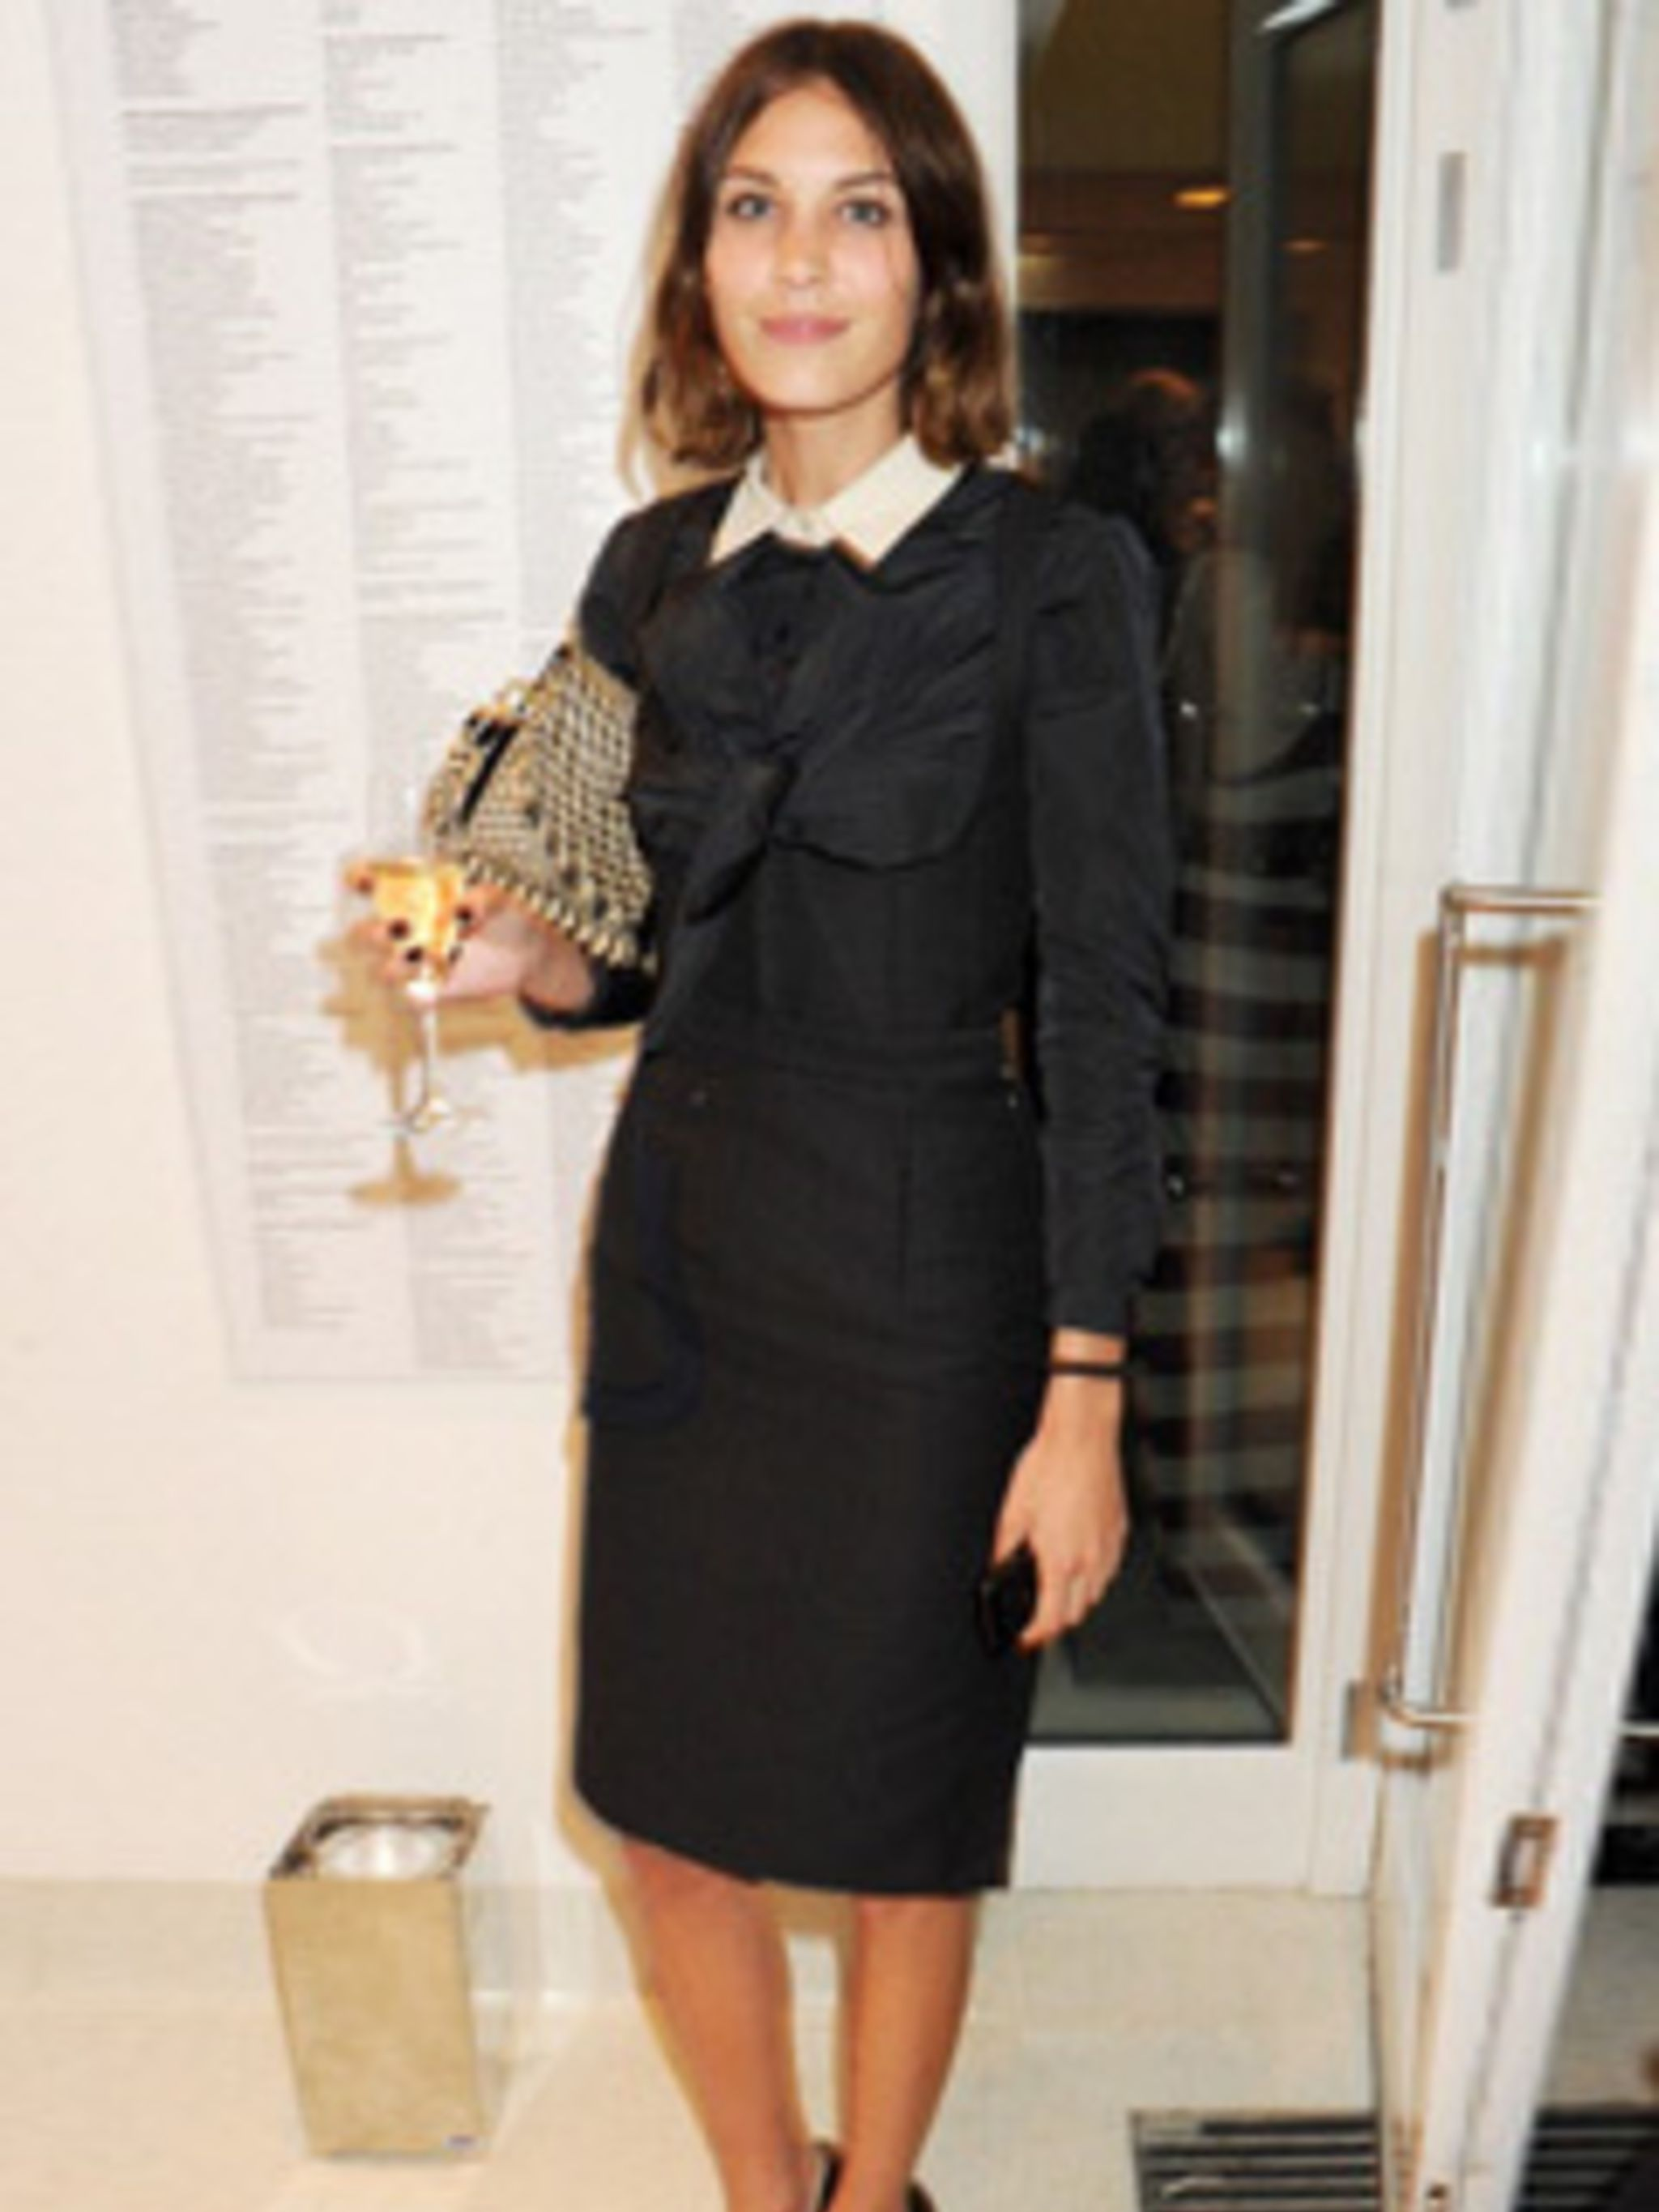 "<p><a href=""http://www.elleuk.com/starstyle/style-files/(section)/alexa-chung"">Alexa Chung</a> teams her shift dress with white collared shirt for the Serpentine Summer party 2011 in London, June 2011.</p>"